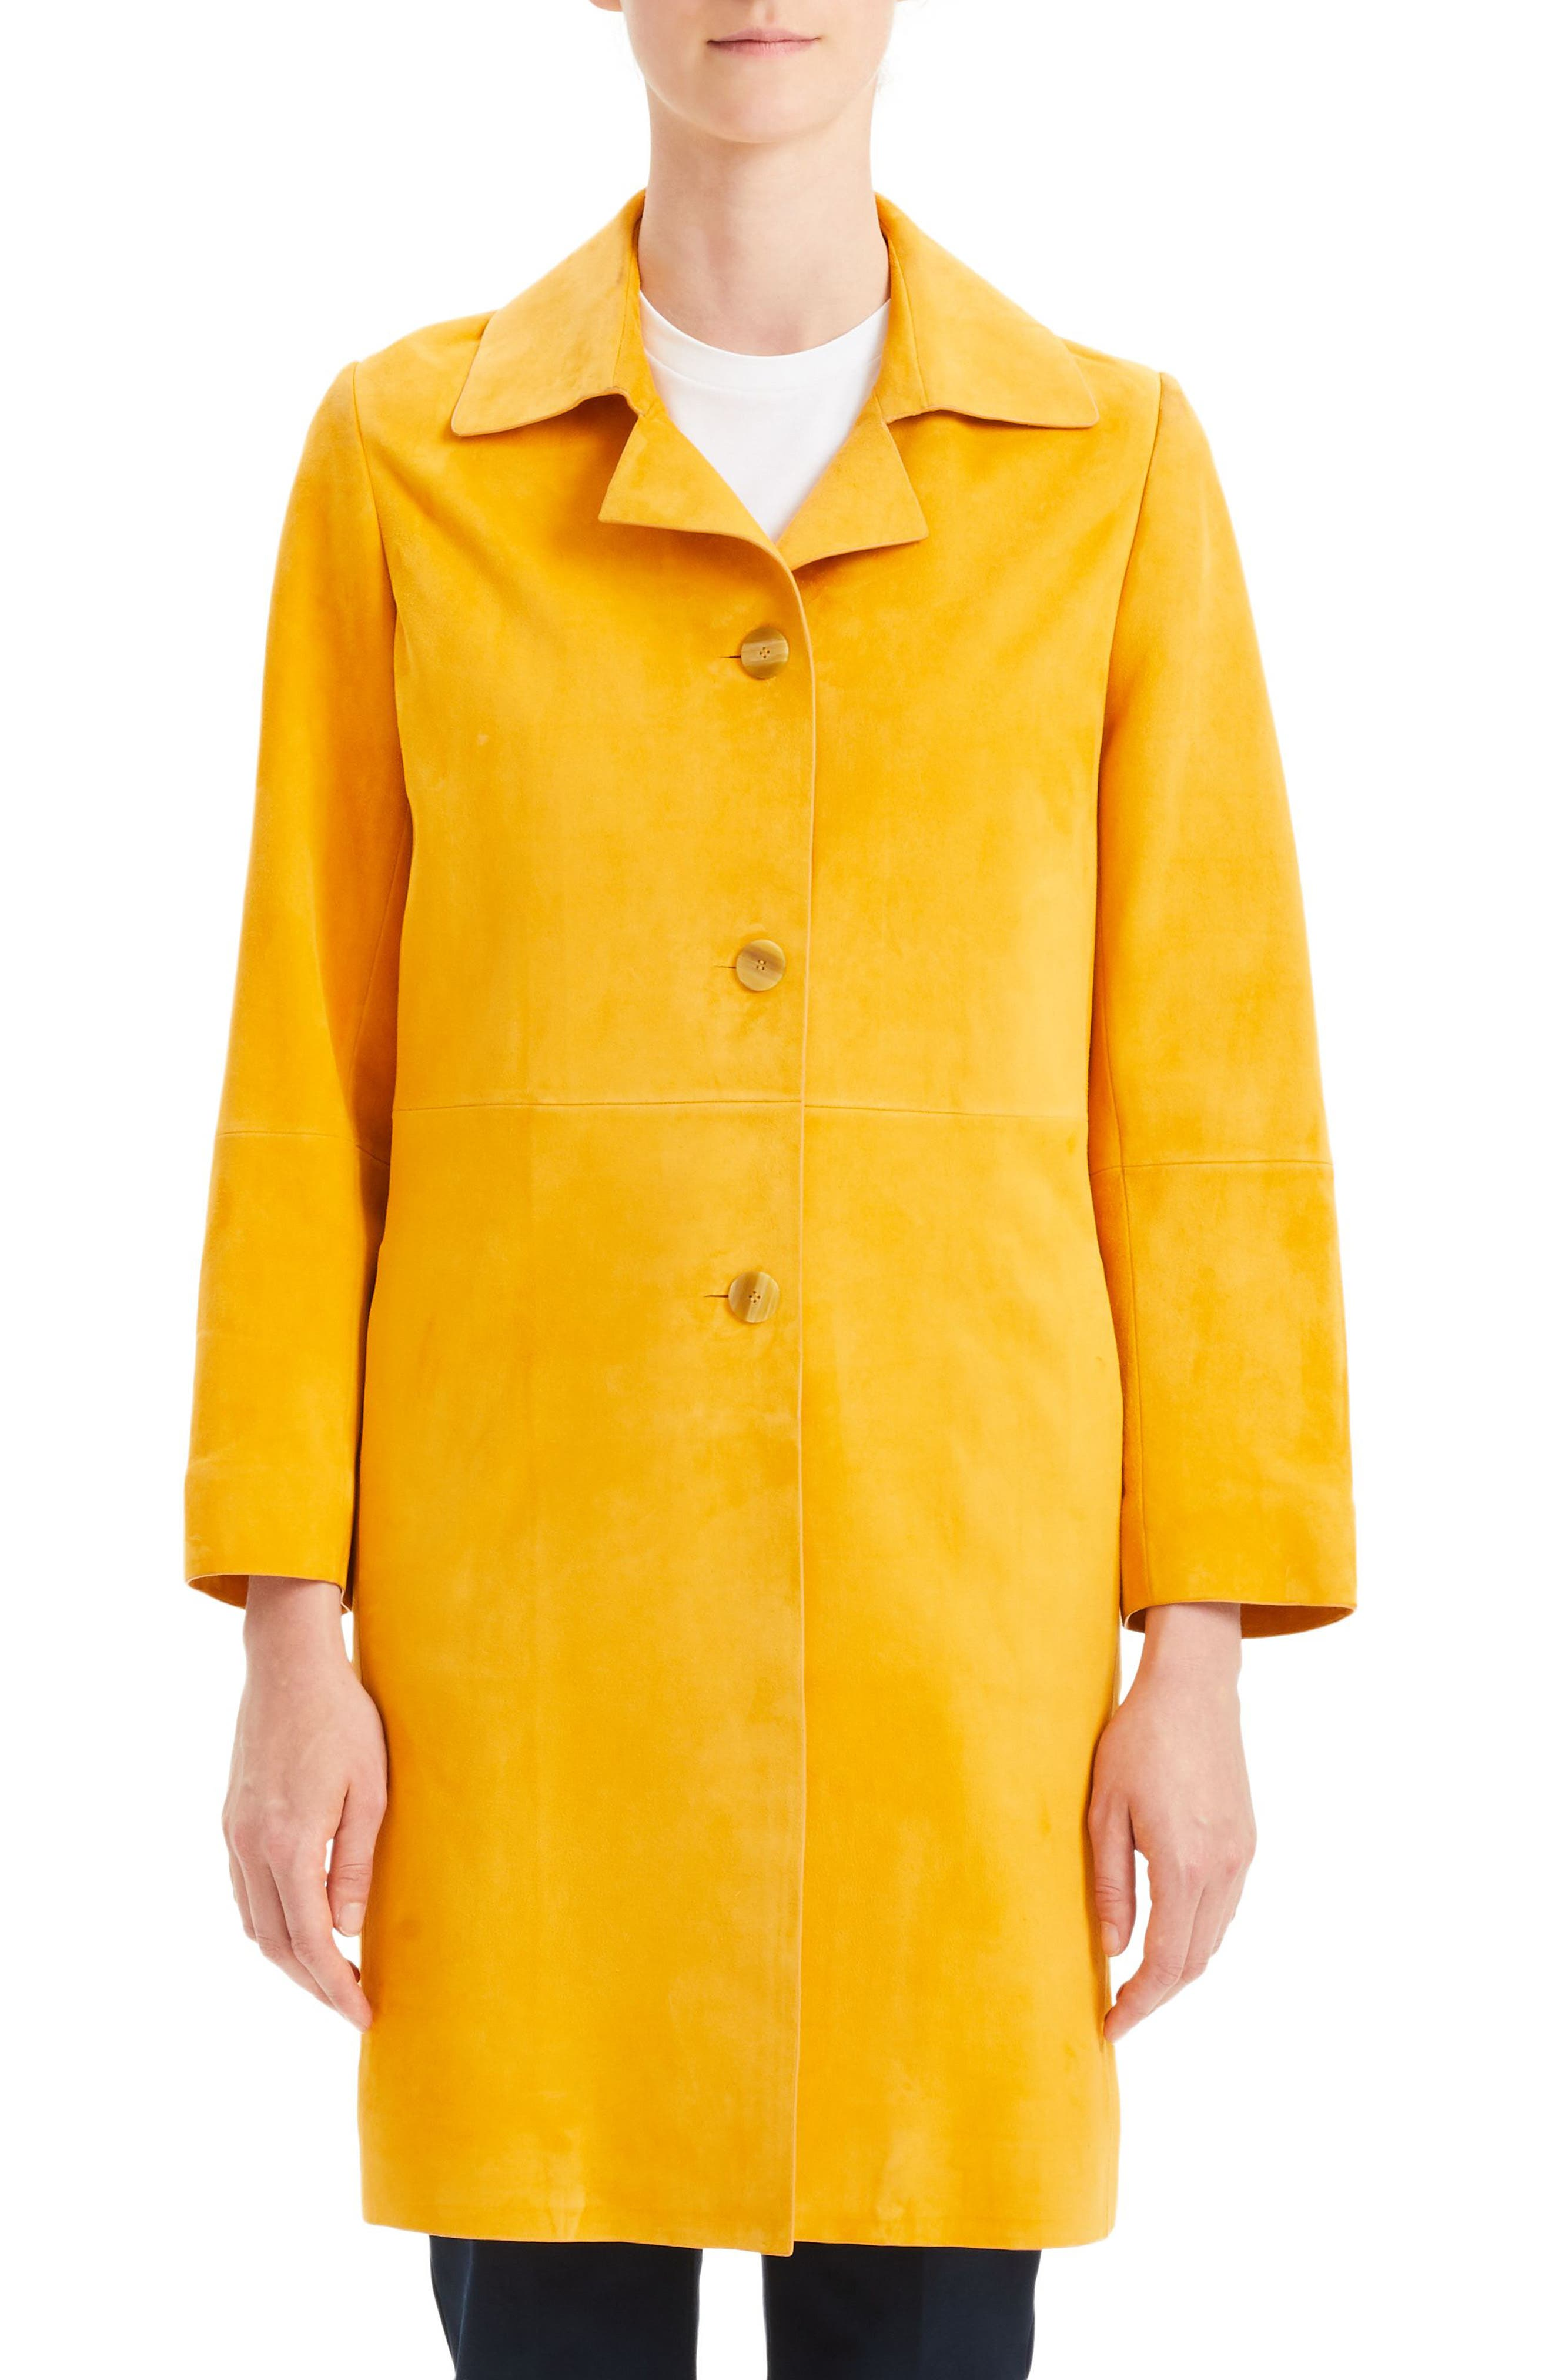 THEORY,                             Piazza Leather Coat,                             Main thumbnail 1, color,                             ZEST